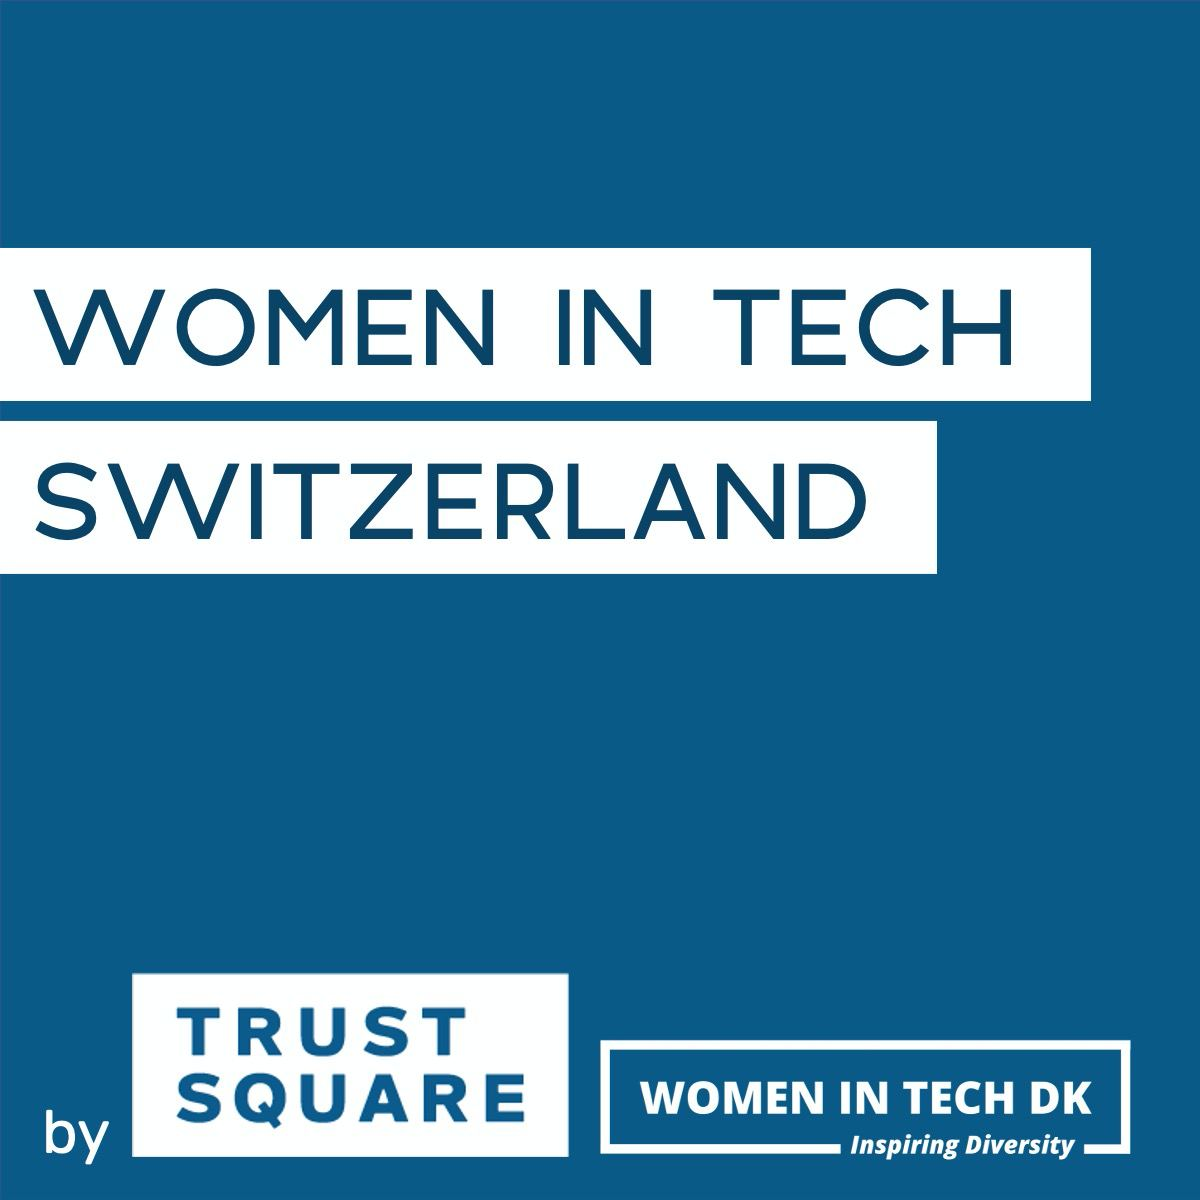 Women in Tech Switzerland